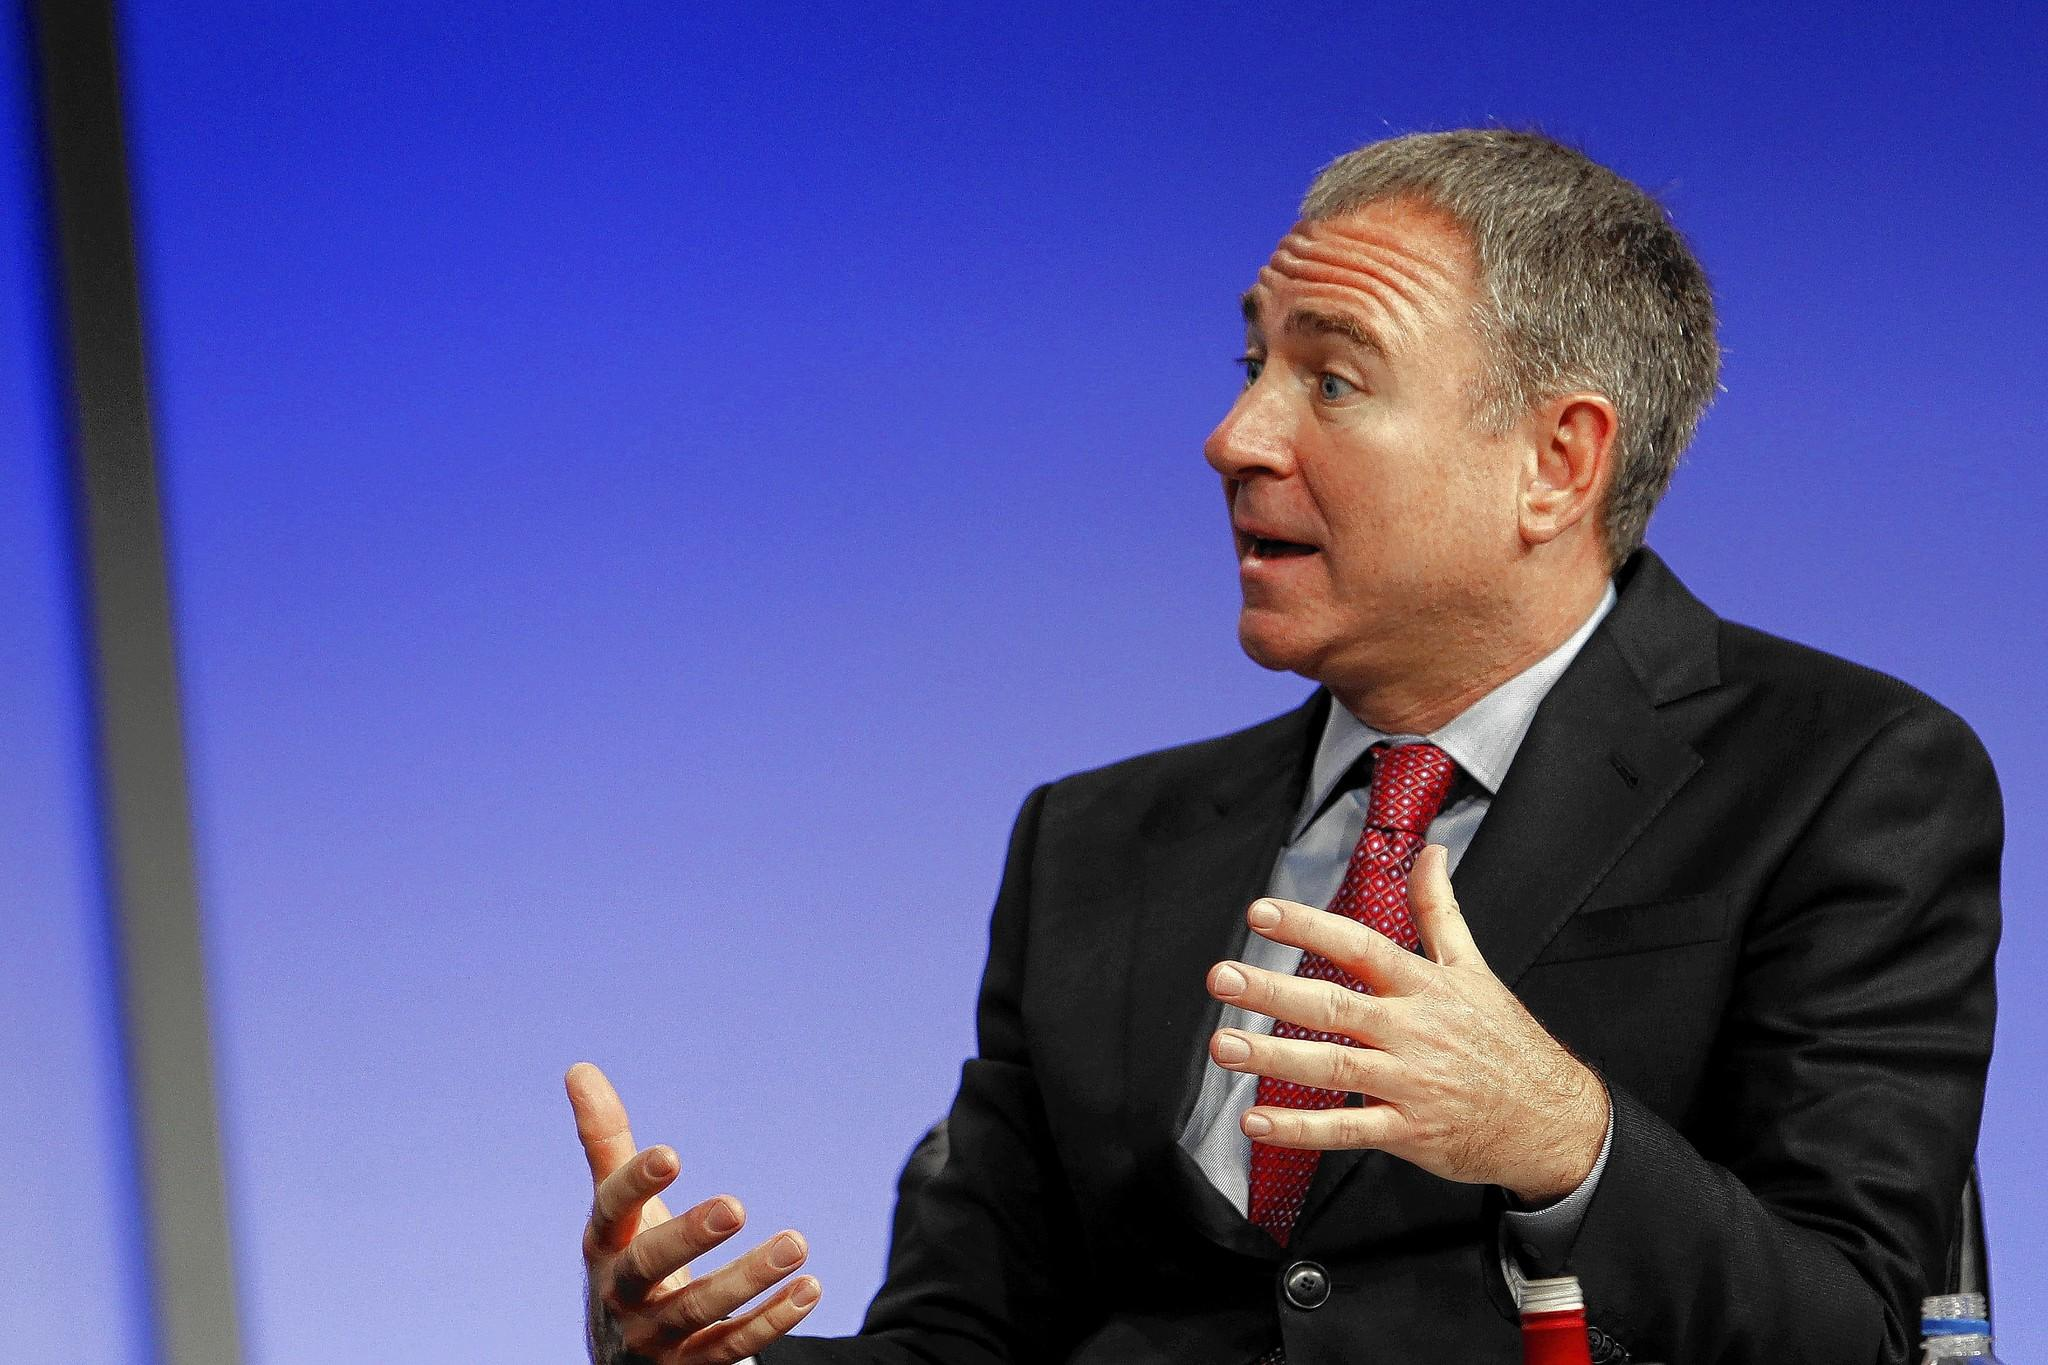 Billionaire Chicagoan and hedge fund manager Ken Griffin is giving $150 million to Harvard University, all but $10 million of which will be dedicated to financial aid for undergraduate students.